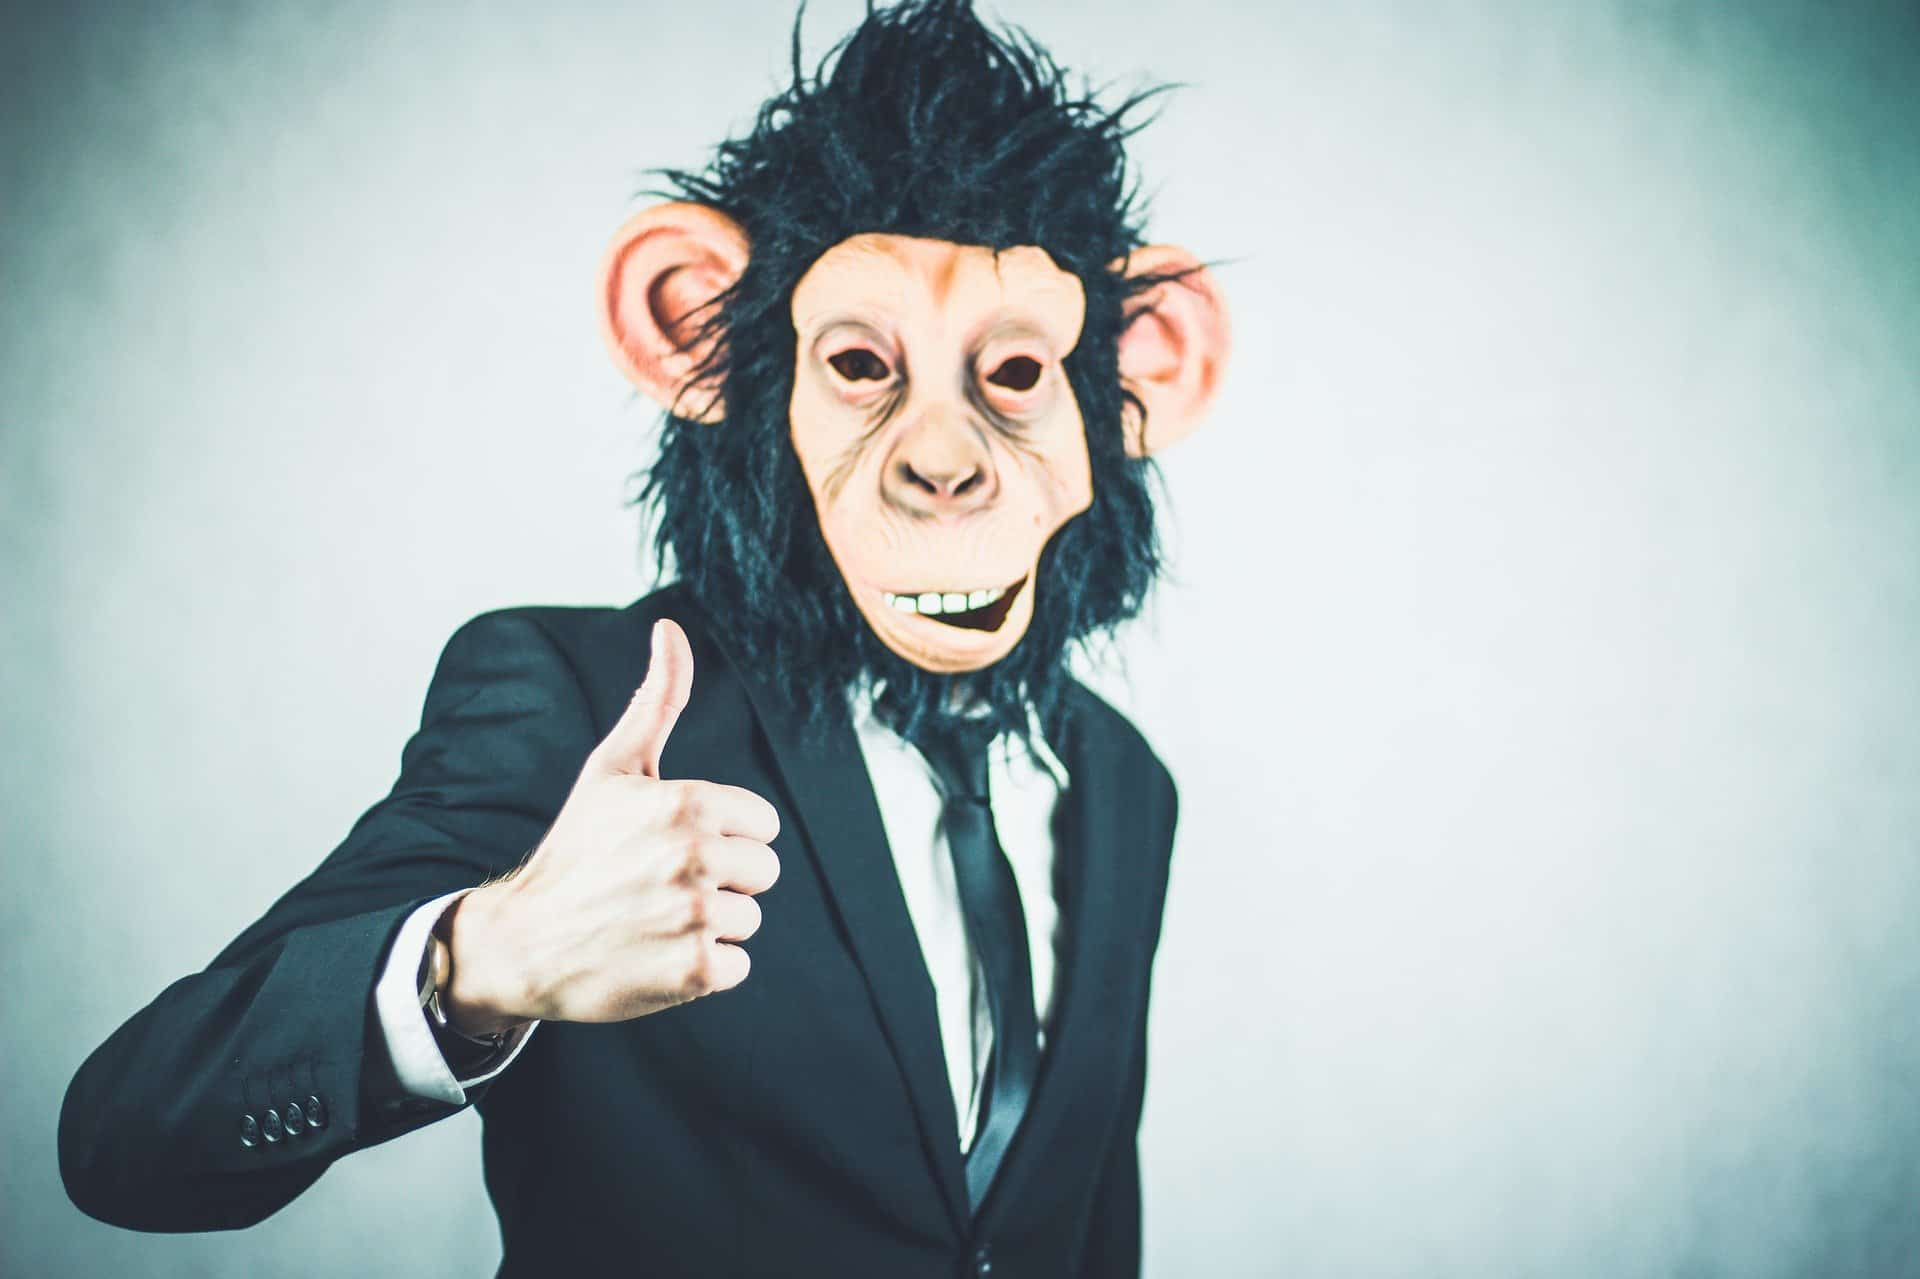 Man in a suit wearing a monkey head